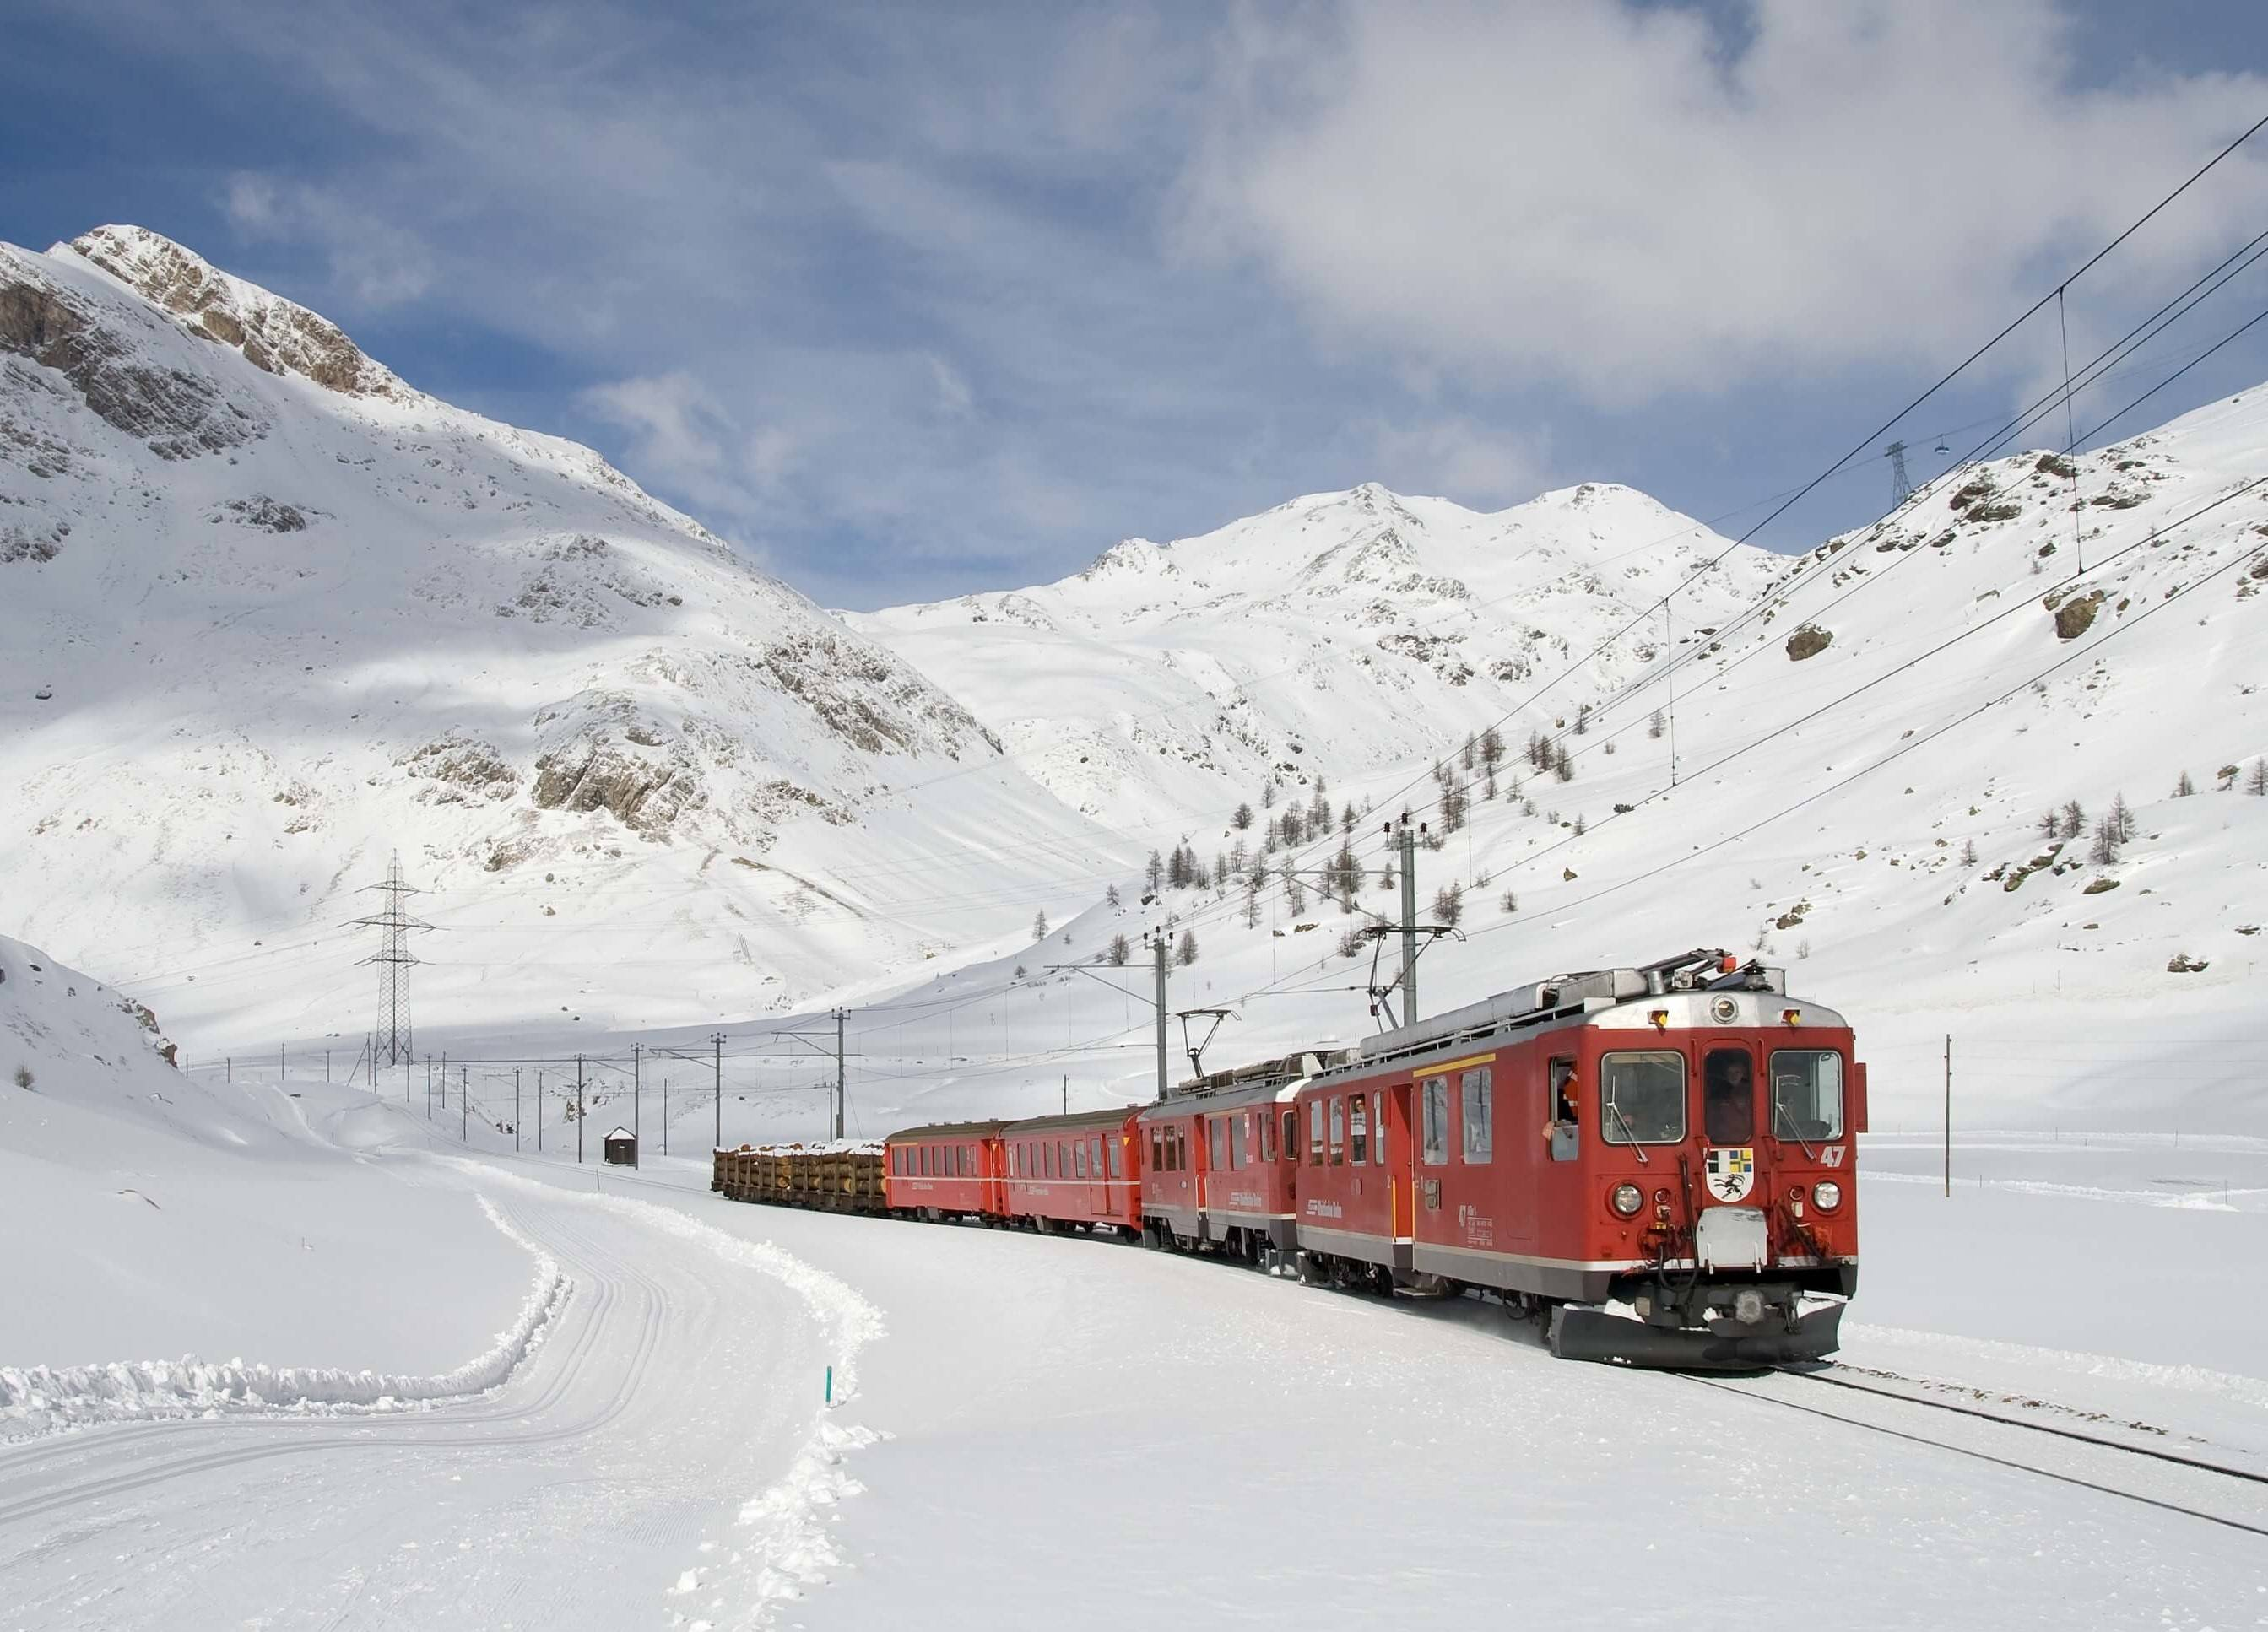 The Bernina Red Train - Brusio Viaduct